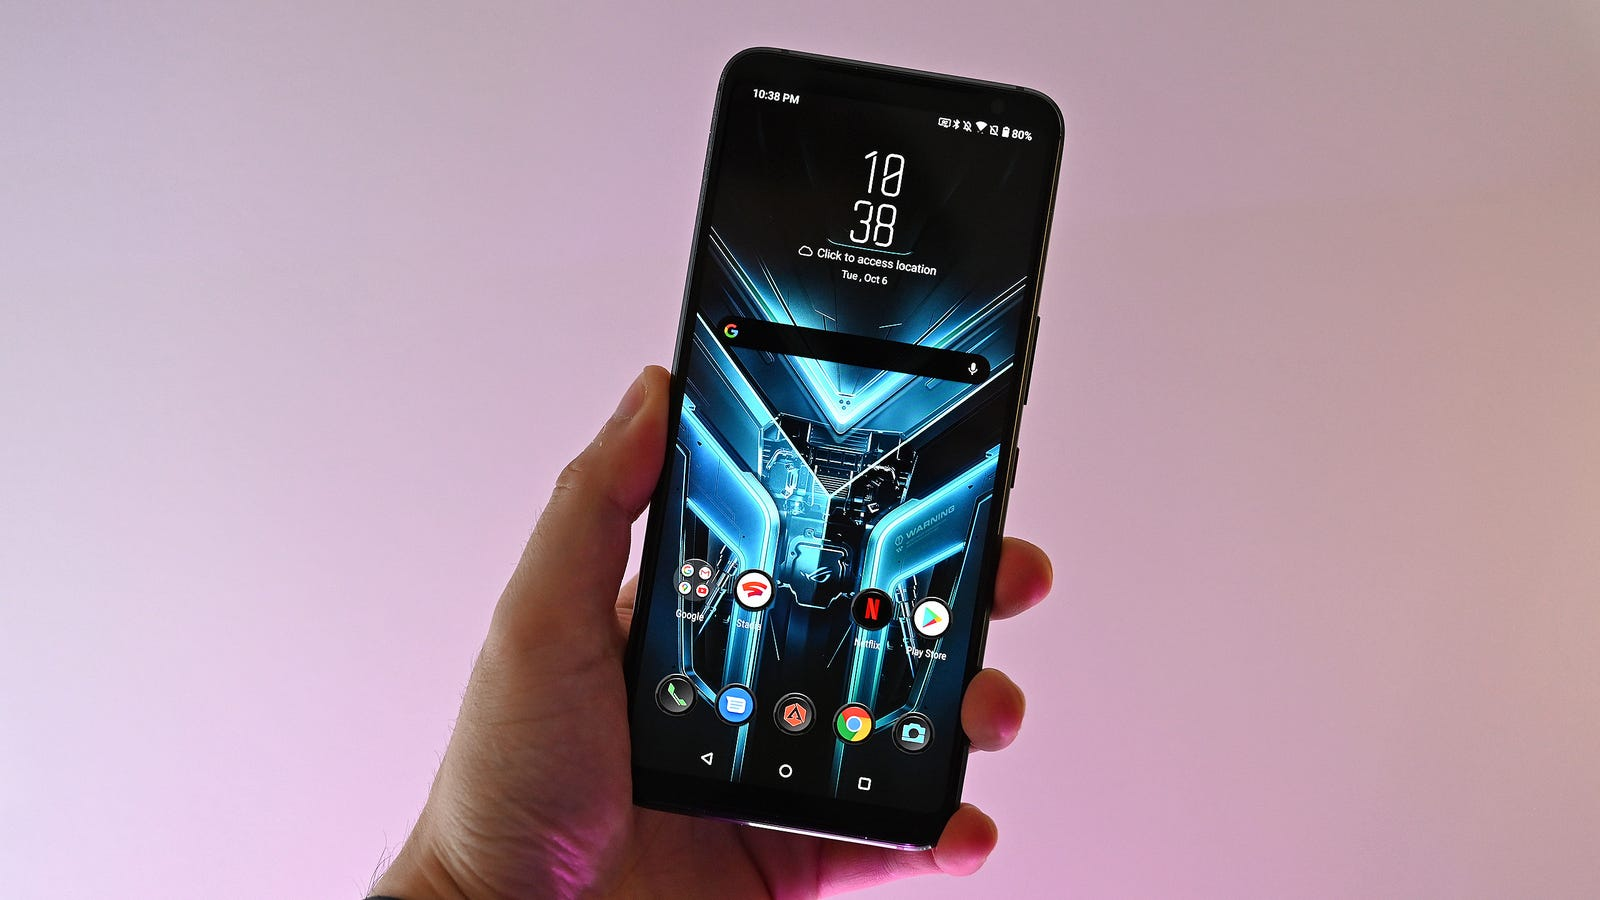 Click through for more images of the ROG Phone 3.